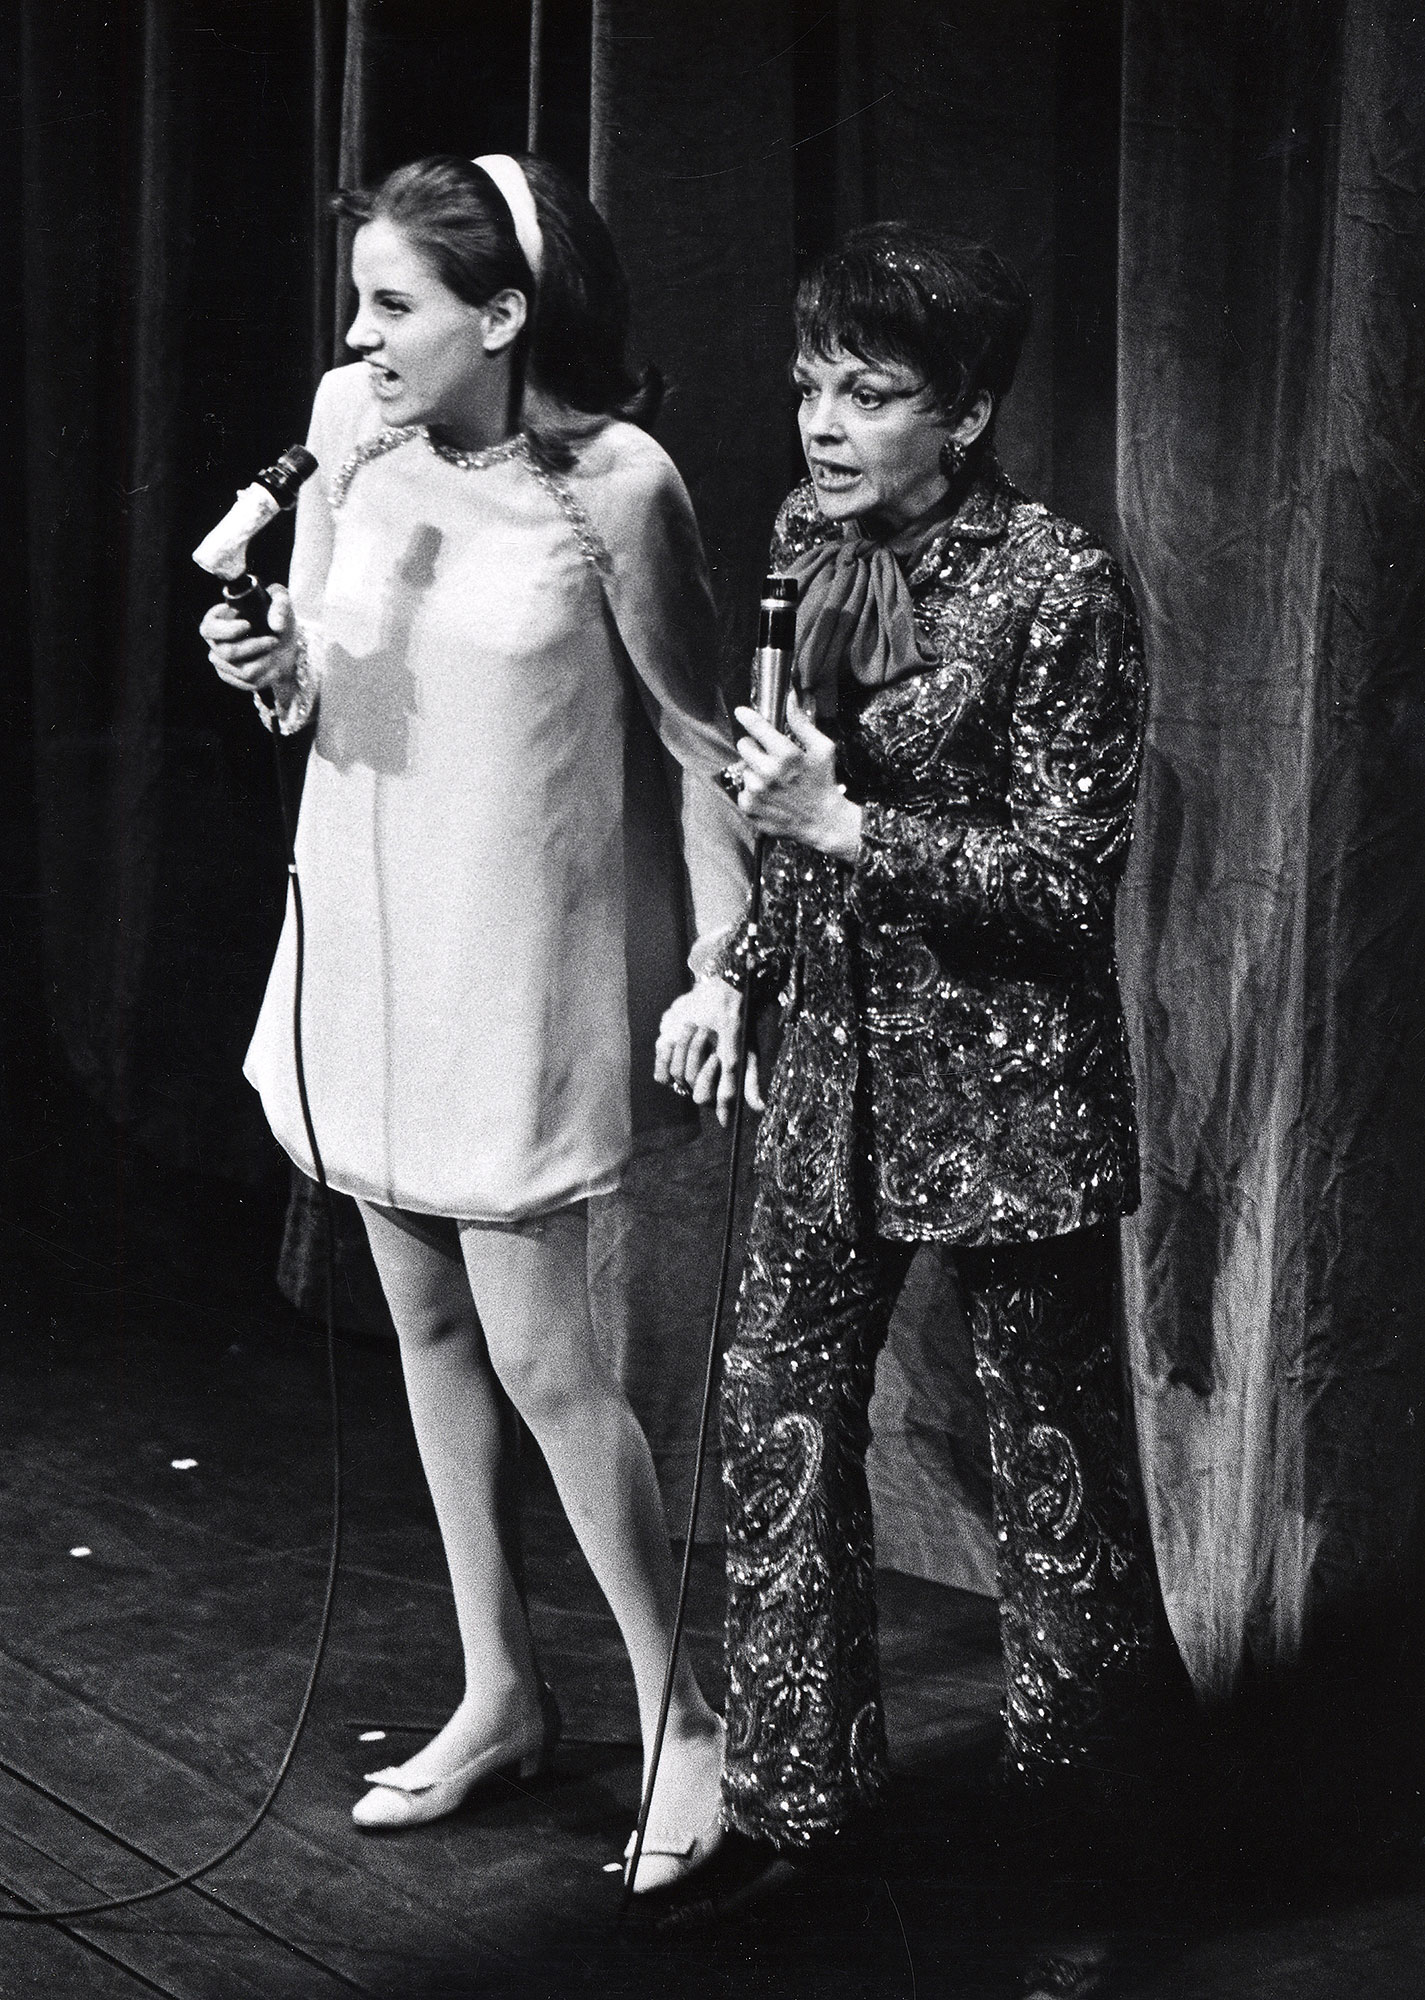 Judy Garland Performance at The Palace Theater - July 31, 1967